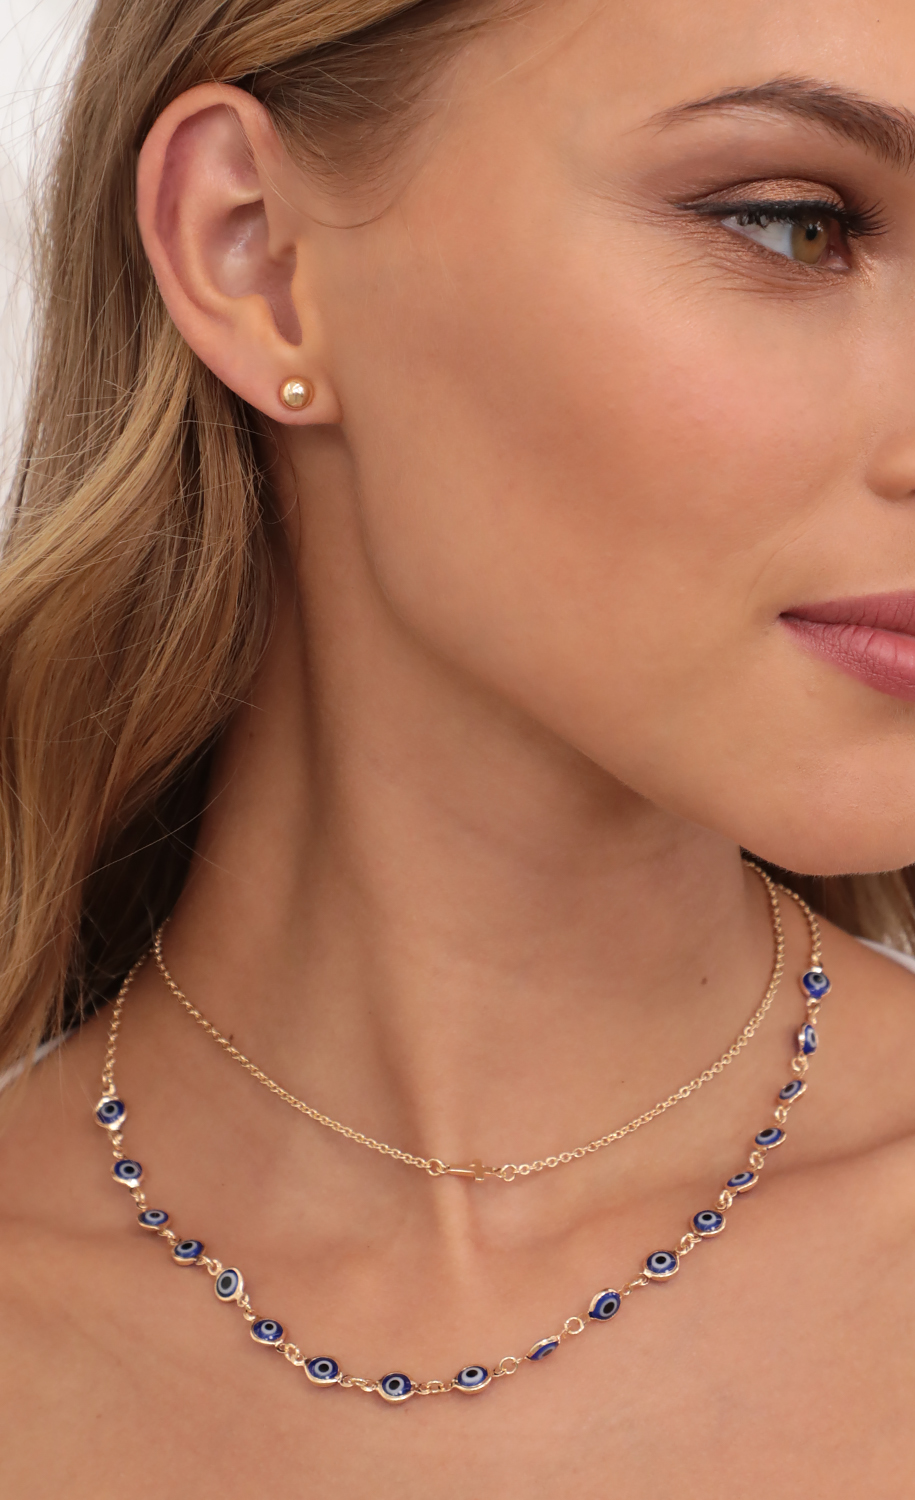 Blue Evil eye Necklace and Earring Set